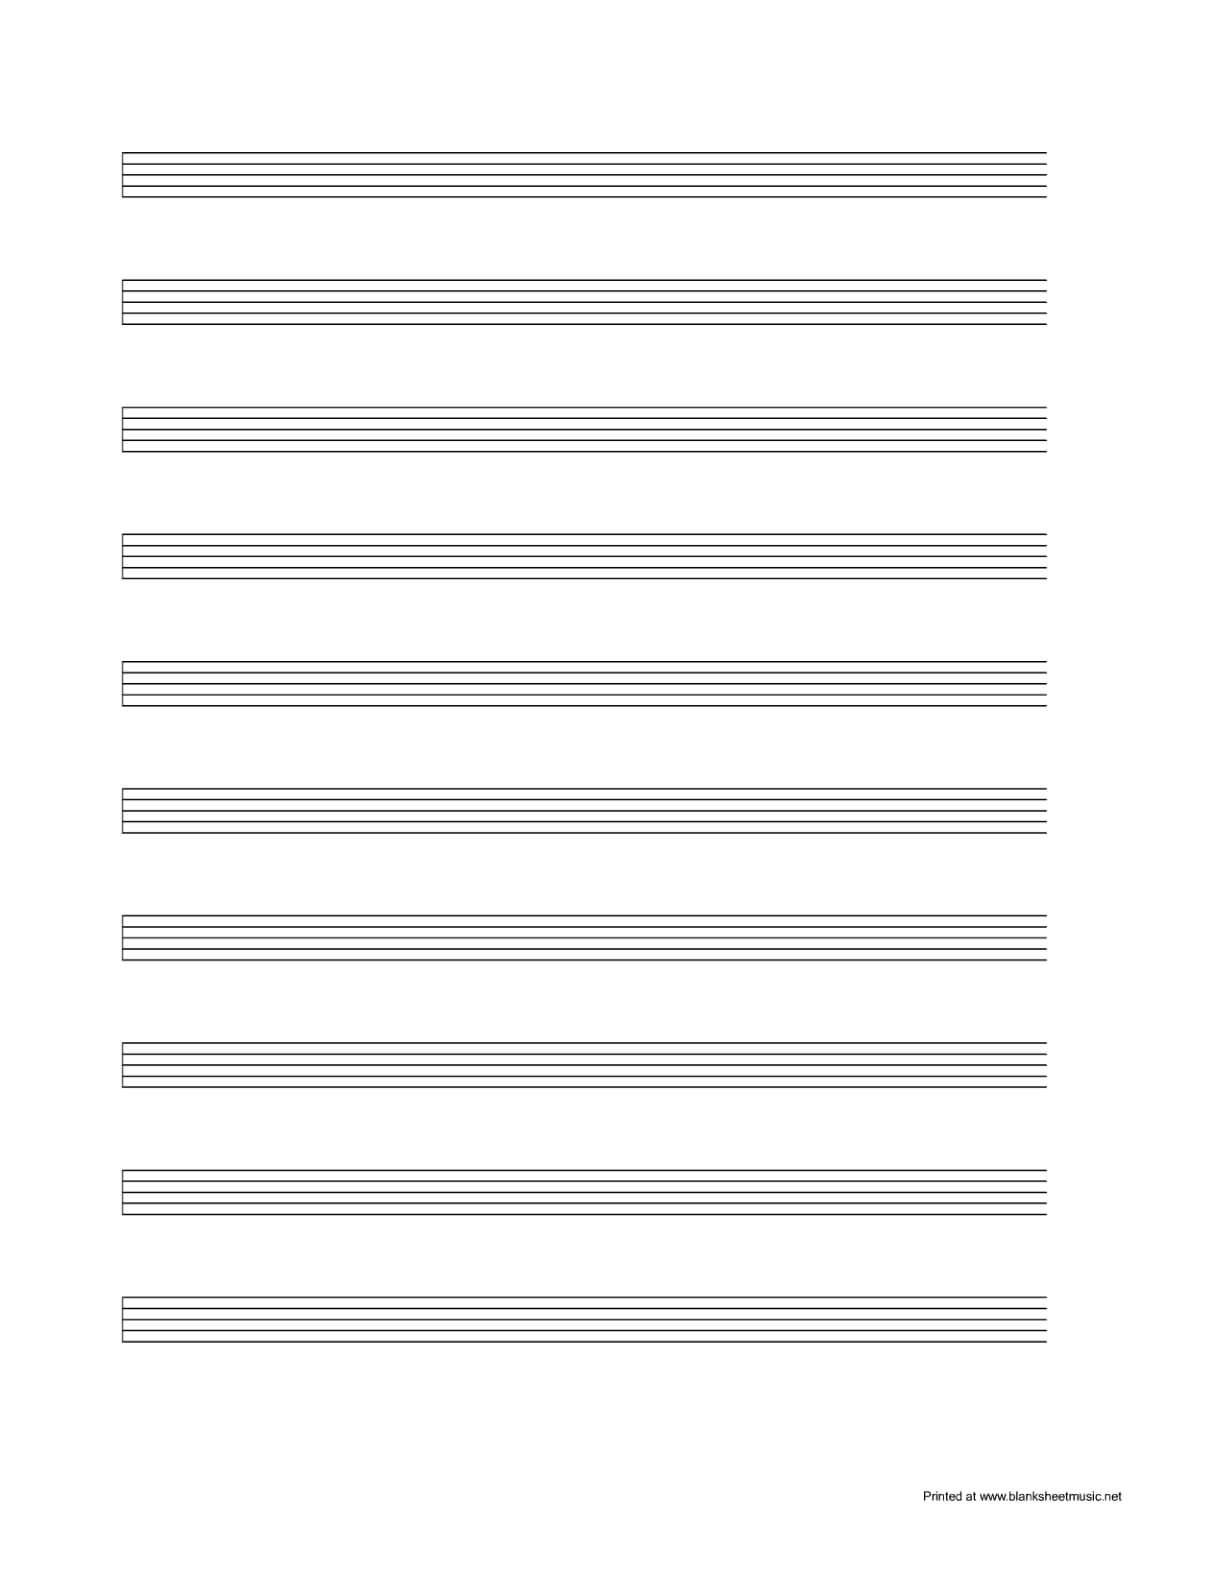 Sheet Music Template Blank For Word Free Pdf Spreadsheet In Blank Sheet Music Template For Word